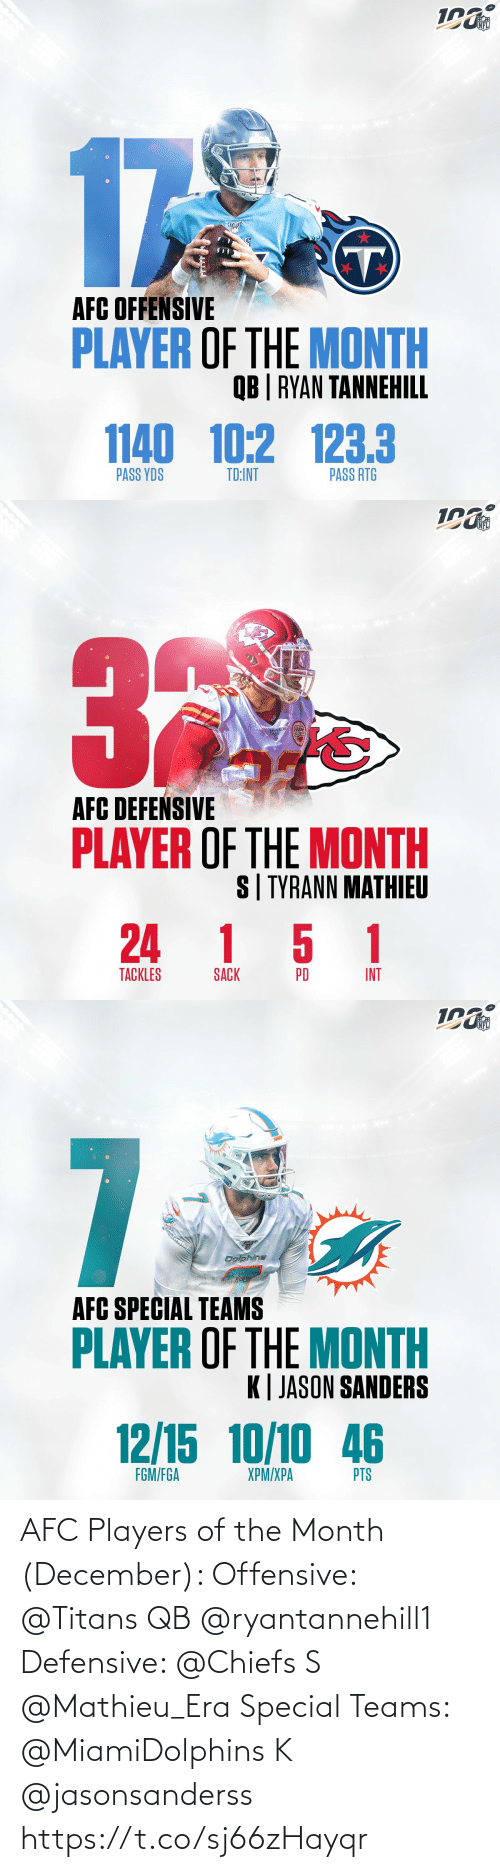 Dolphins: NFL  17  AFC OFFENSIVE  PLAYER OF THE MONTH  QB | RYAN TANNEHILL  1140 10:2 123.3  PASS RTG  PASS YDS  TD:INT   NFL  AFC DEFEŃSIVE  PLAYER OF THE MONTH  S| TYRANN MATHIEU  24 1 5 1  TACKLES  INT  PD  SACK   NFL  7  Dolphins  AFC SPECIAL TEAMS  PLAYER OF THE MONTH  K| JASON SANDERS  12/15 10/10 46  FGM/FGA  XPM/XPA  PTS AFC Players of the Month (December):   Offensive: @Titans QB @ryantannehill1    Defensive: @Chiefs S @Mathieu_Era   Special Teams: @MiamiDolphins K @jasonsanderss https://t.co/sj66zHayqr